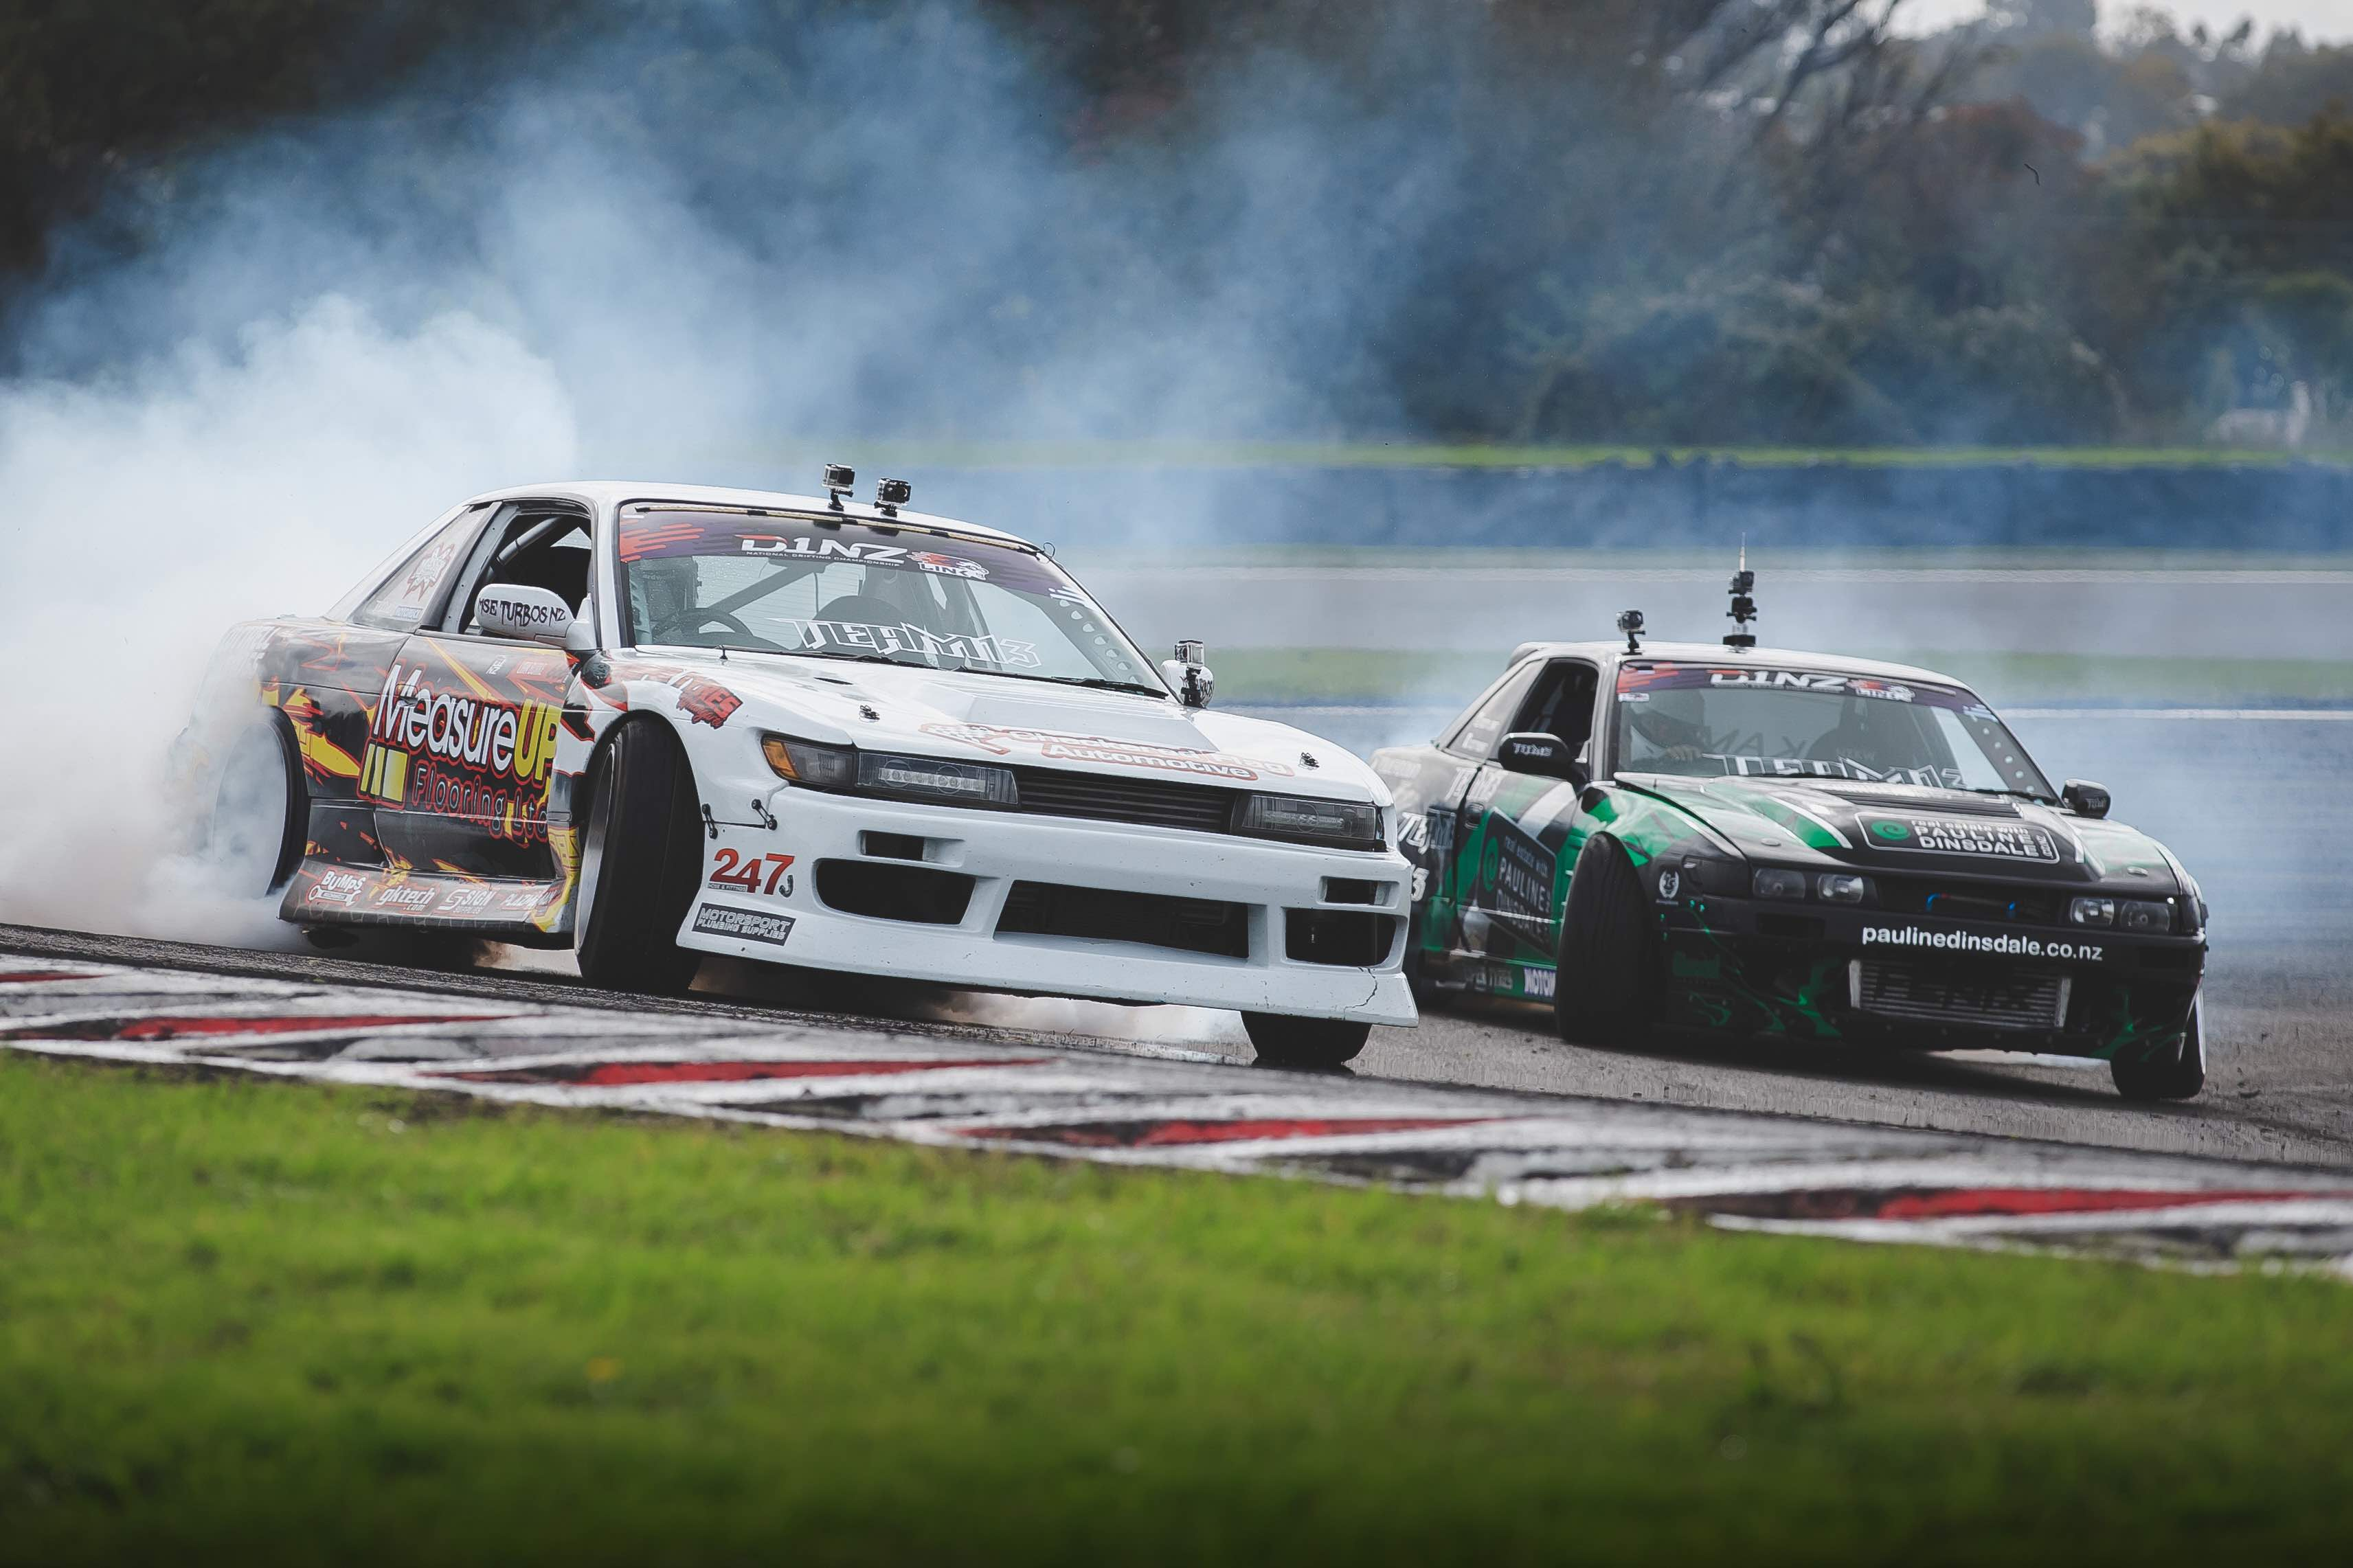 Team 13 duo eying D1NZ Pro Series step up for 2019